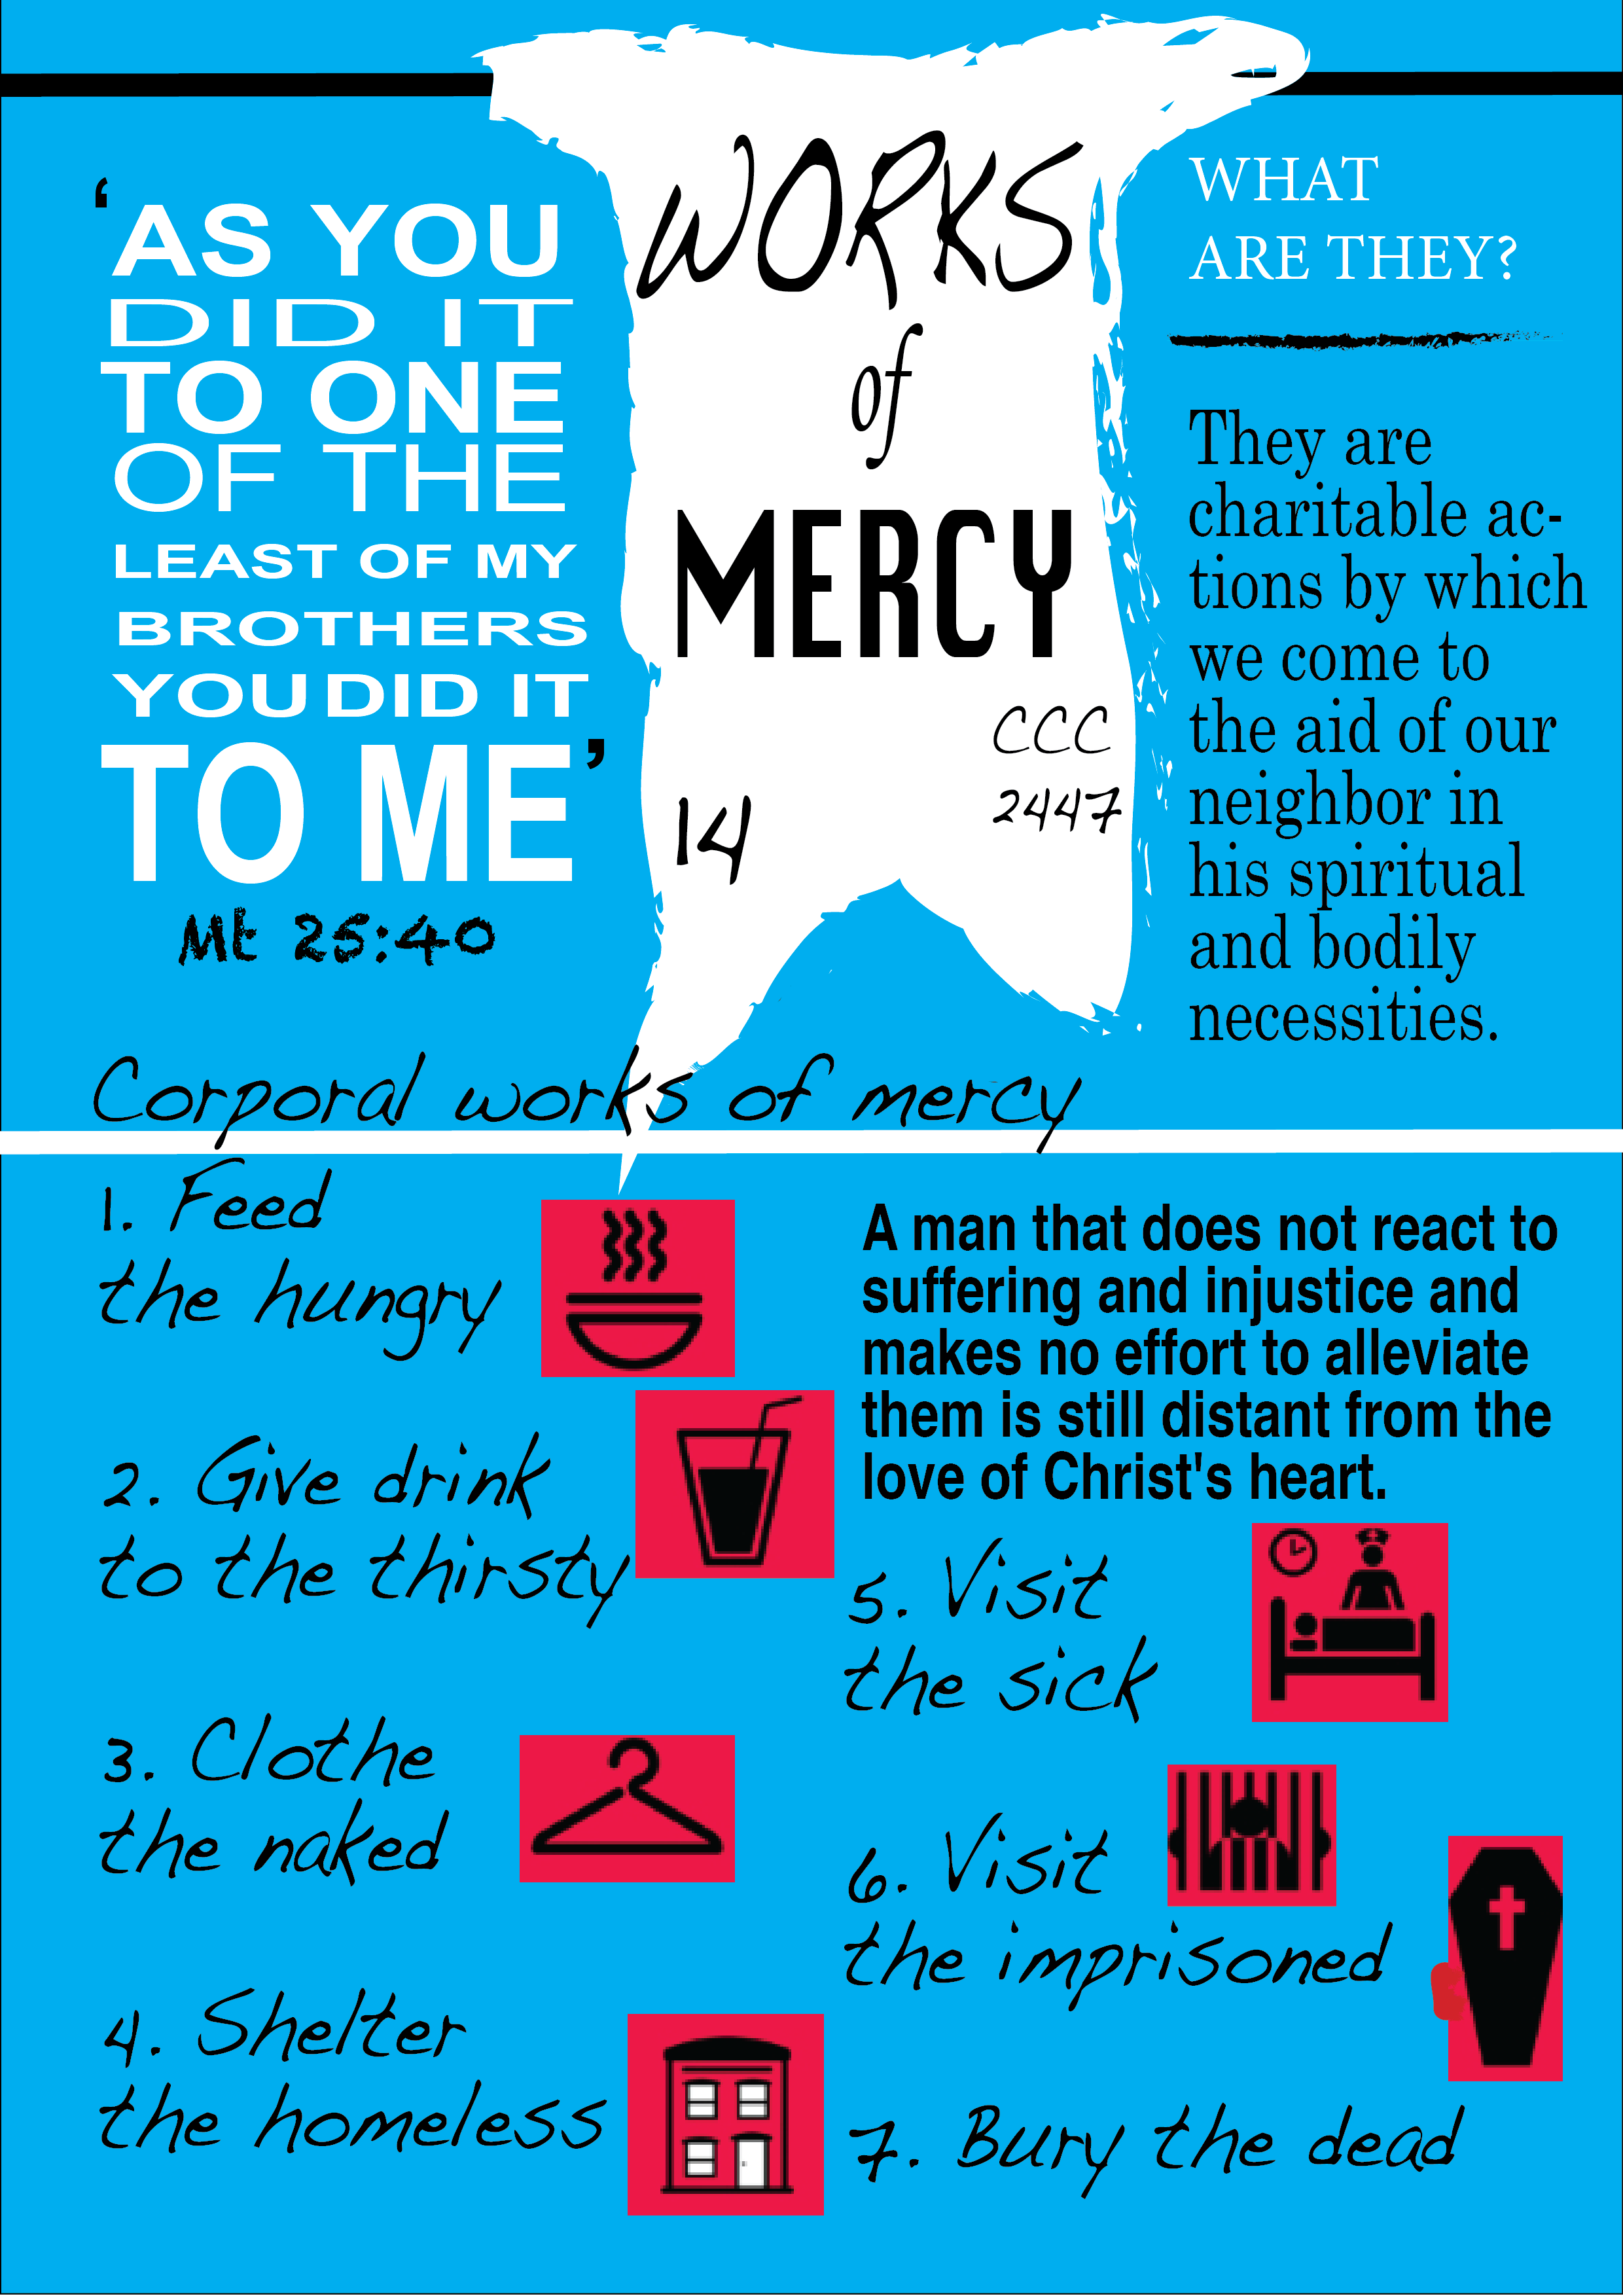 Blessed are the merciful, or by doing good to your neighbor, you help yourself